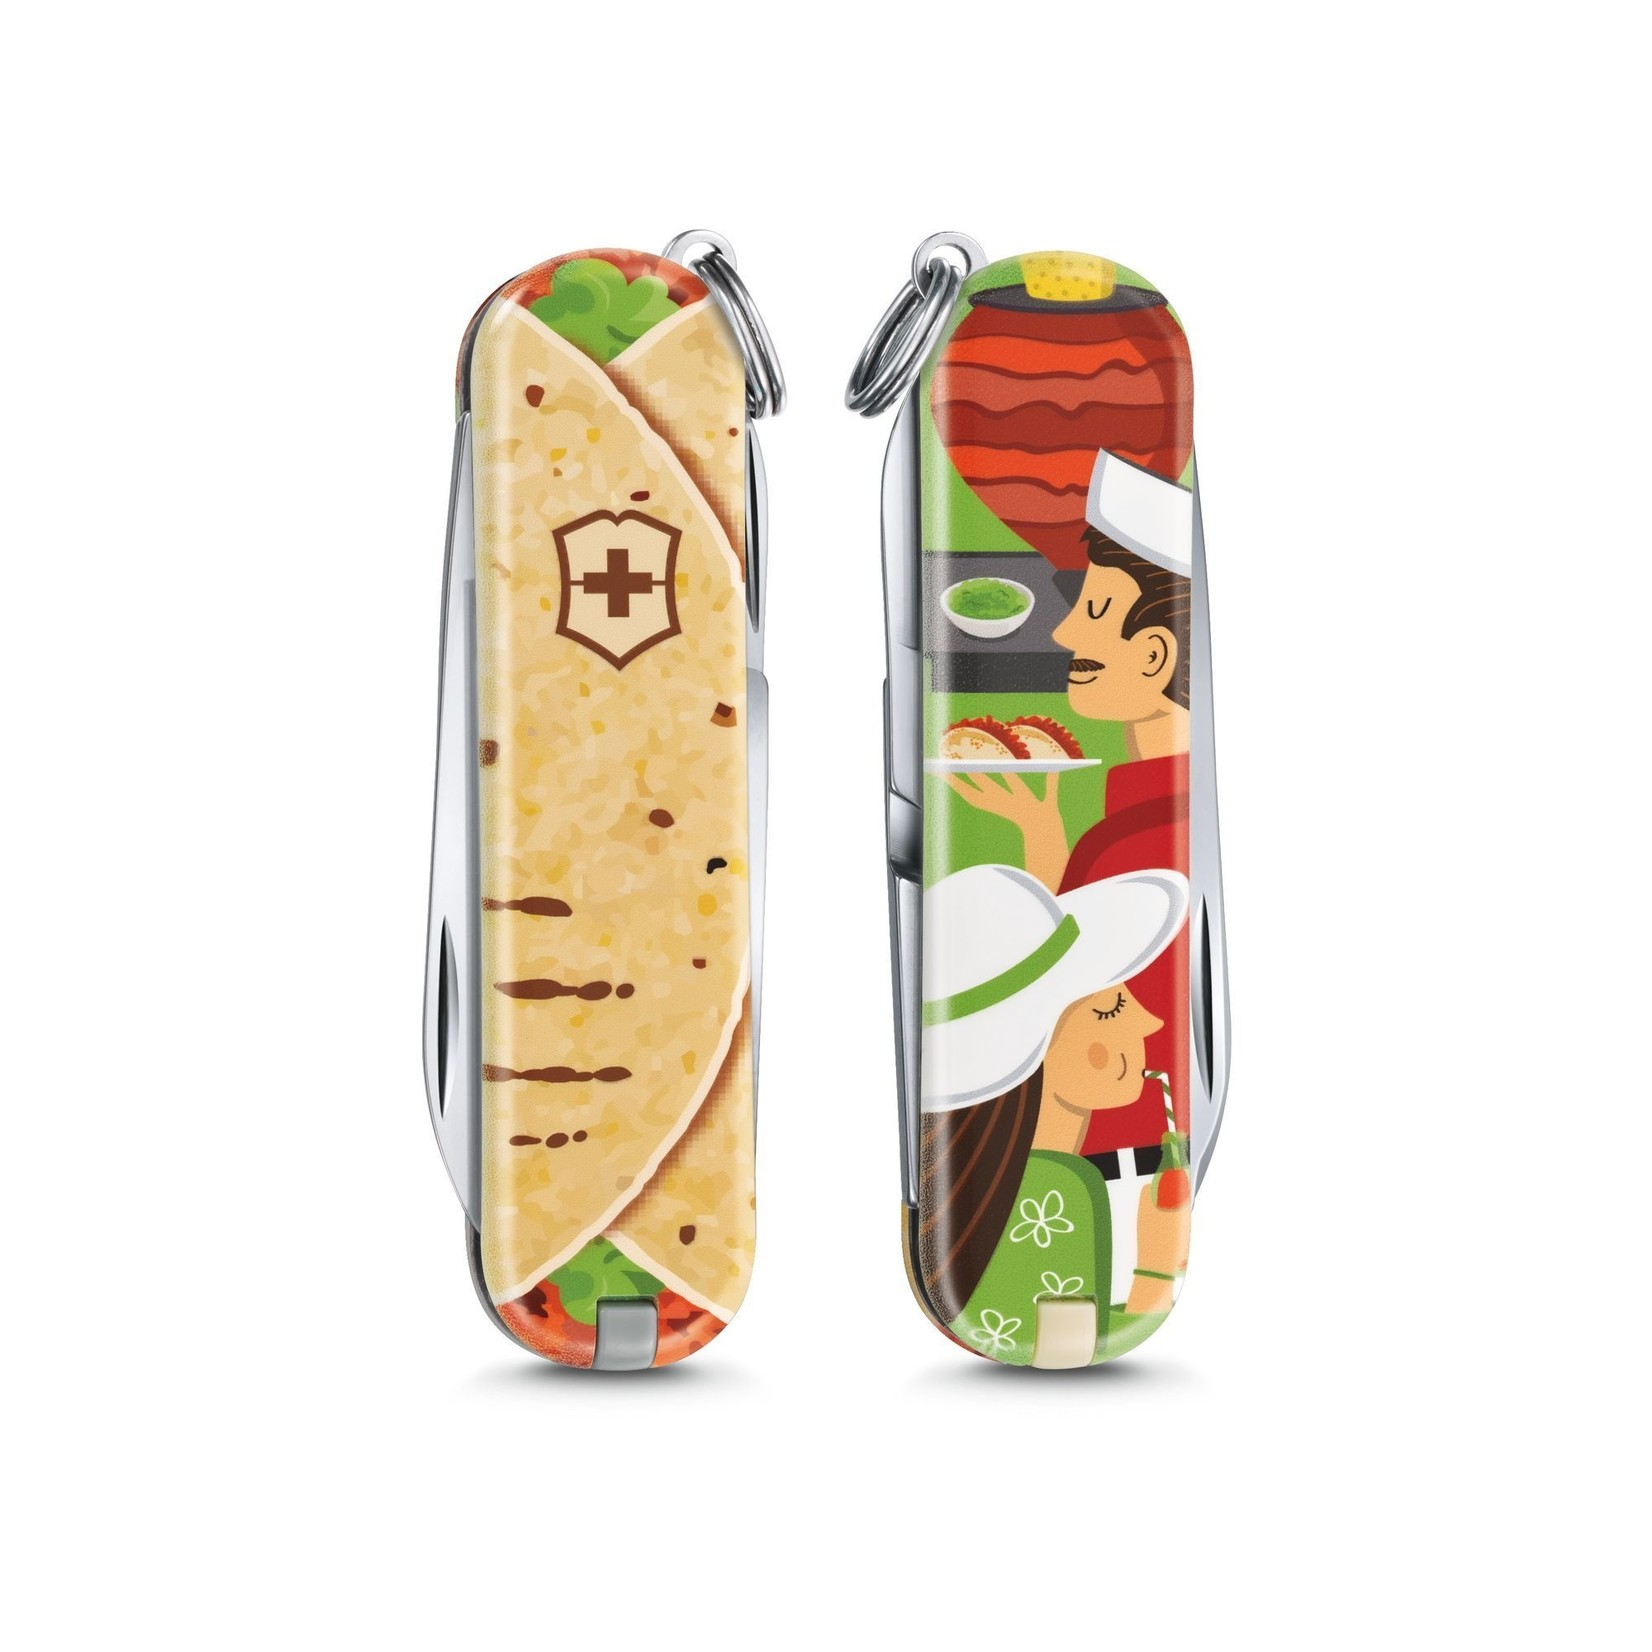 Victorinox Victorinox Classic SD zwitsers zakmes limited edition 2019 mexicaanse taco's